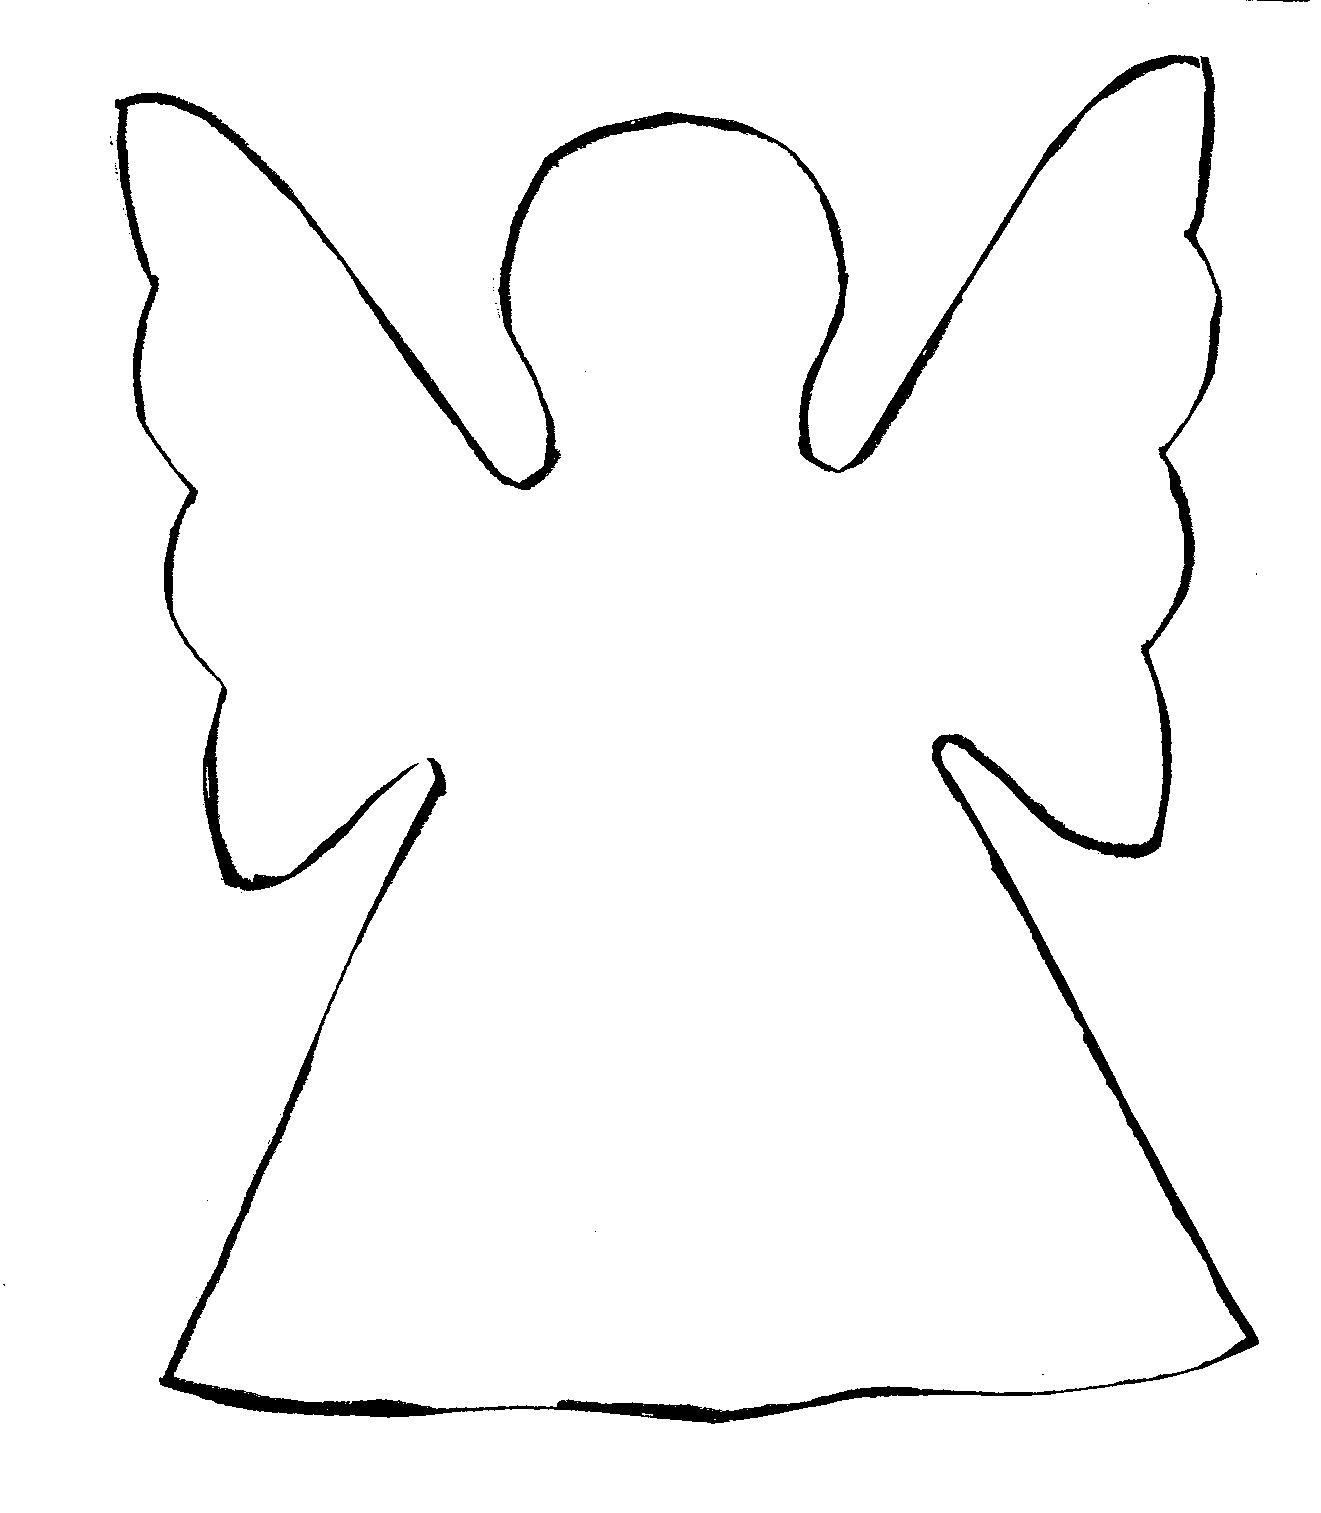 christmas-angel-clip-art-Christmas-Angel-Clipart-8.jpg